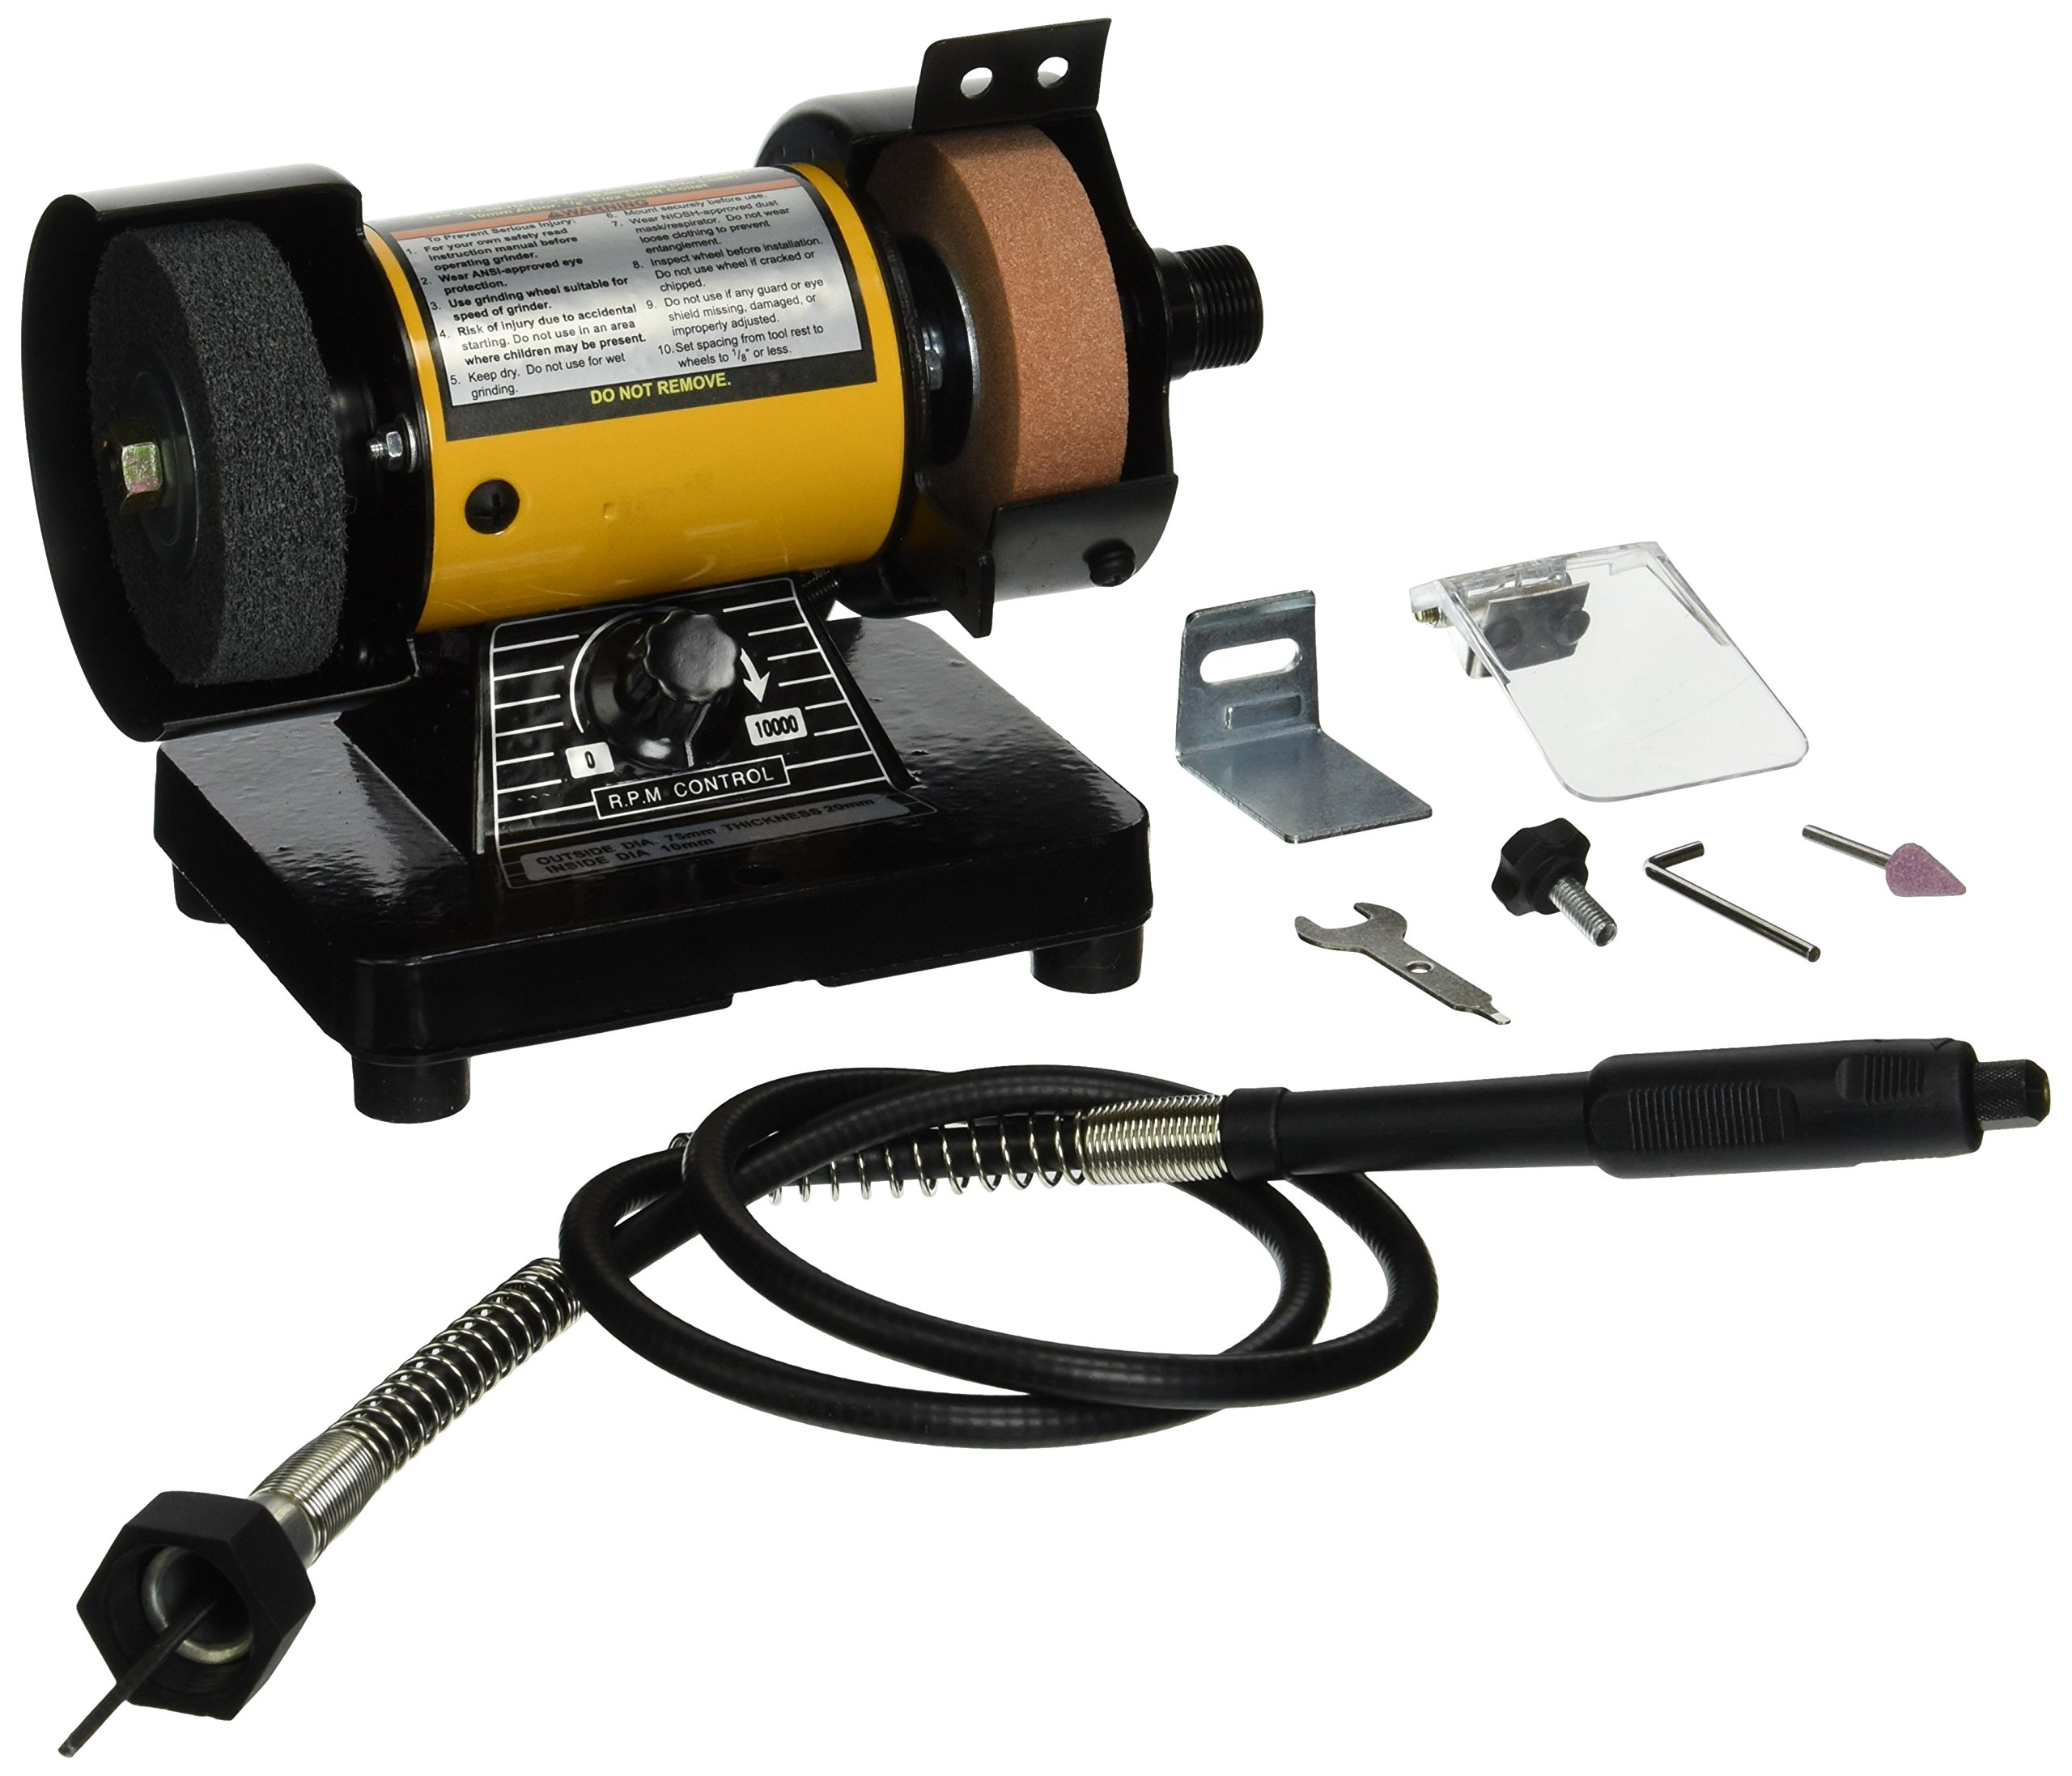 TruePower 199 Mini Multi Purpose Bench Grinder and Polisher with Flexible Shaft, Tool Rest and Safety Guard, 3-Inch by TruePower